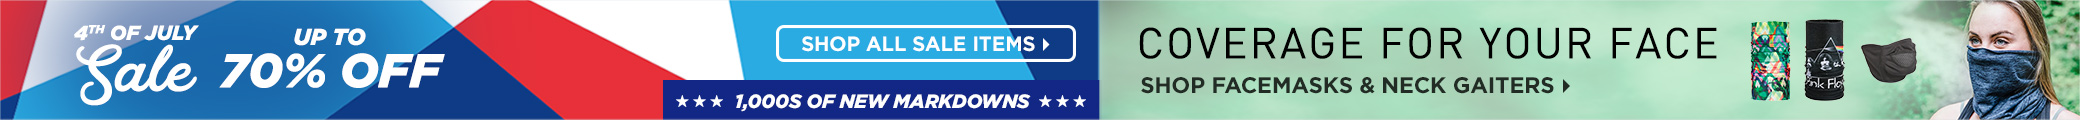 Sitewide Markdowns! July 4th Savings + Facemasks and Neck Gaiters